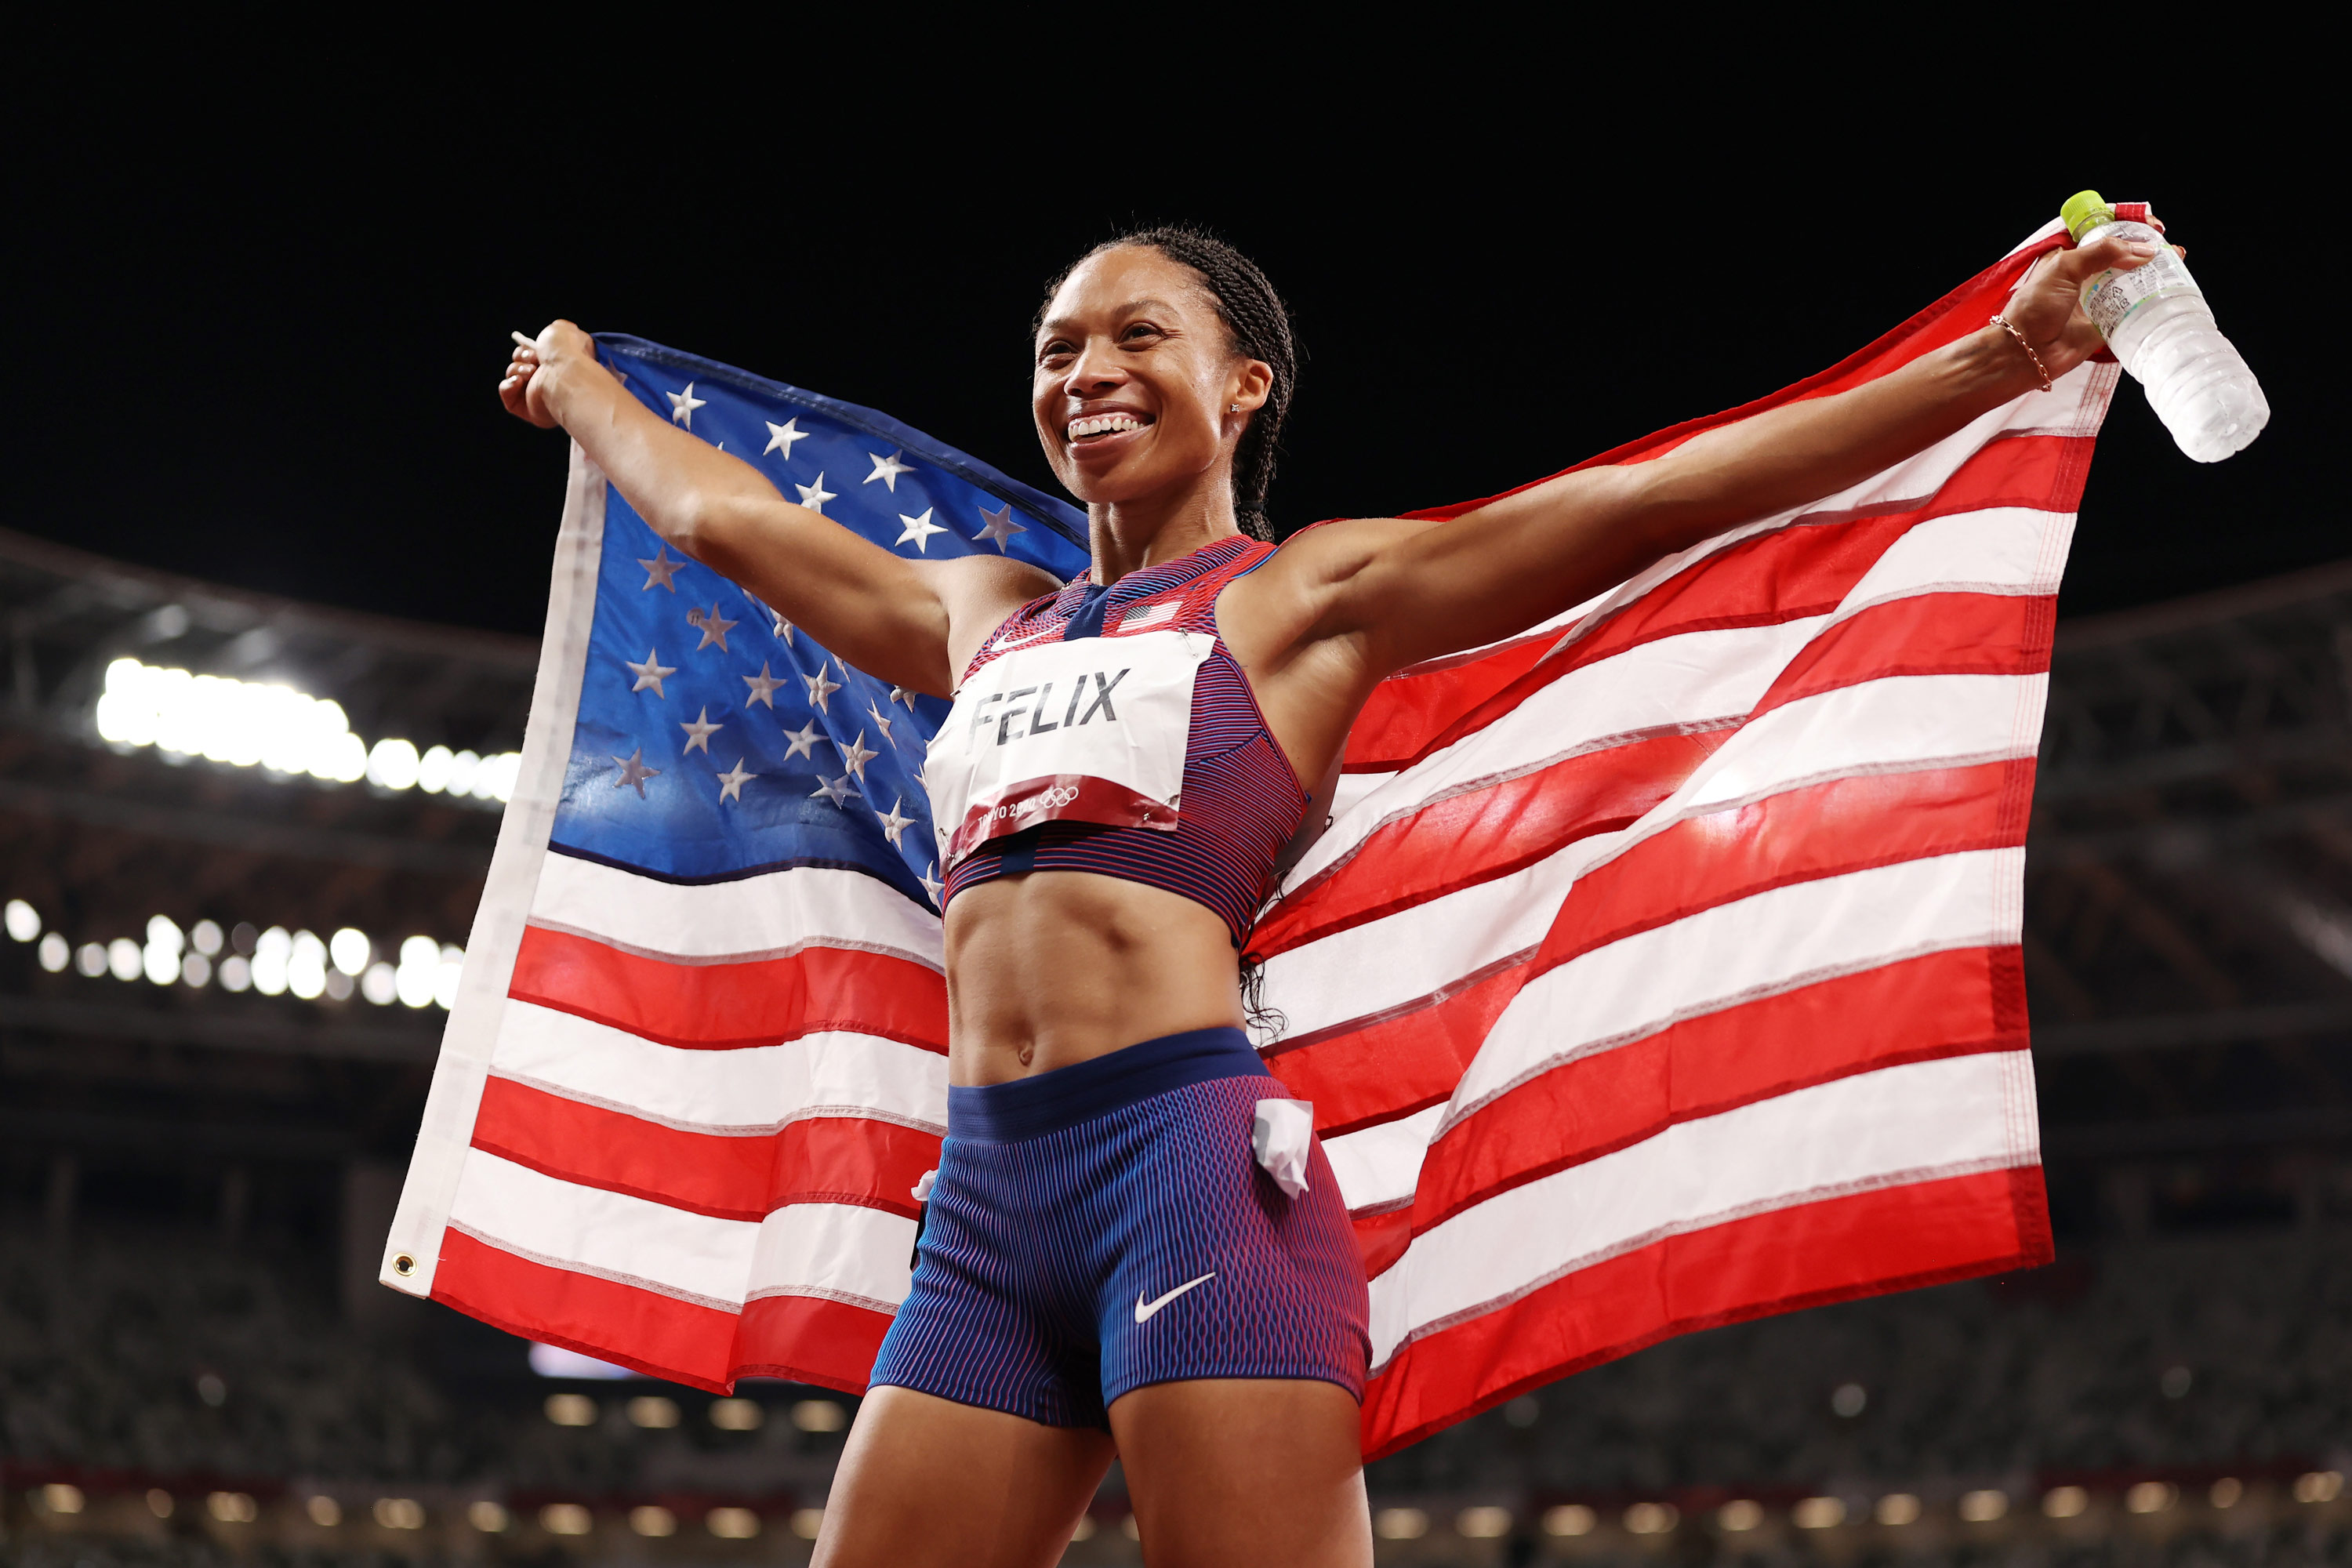 USA's Allyson Felix reacts after winning the bronze medal in the 400m on August 6.